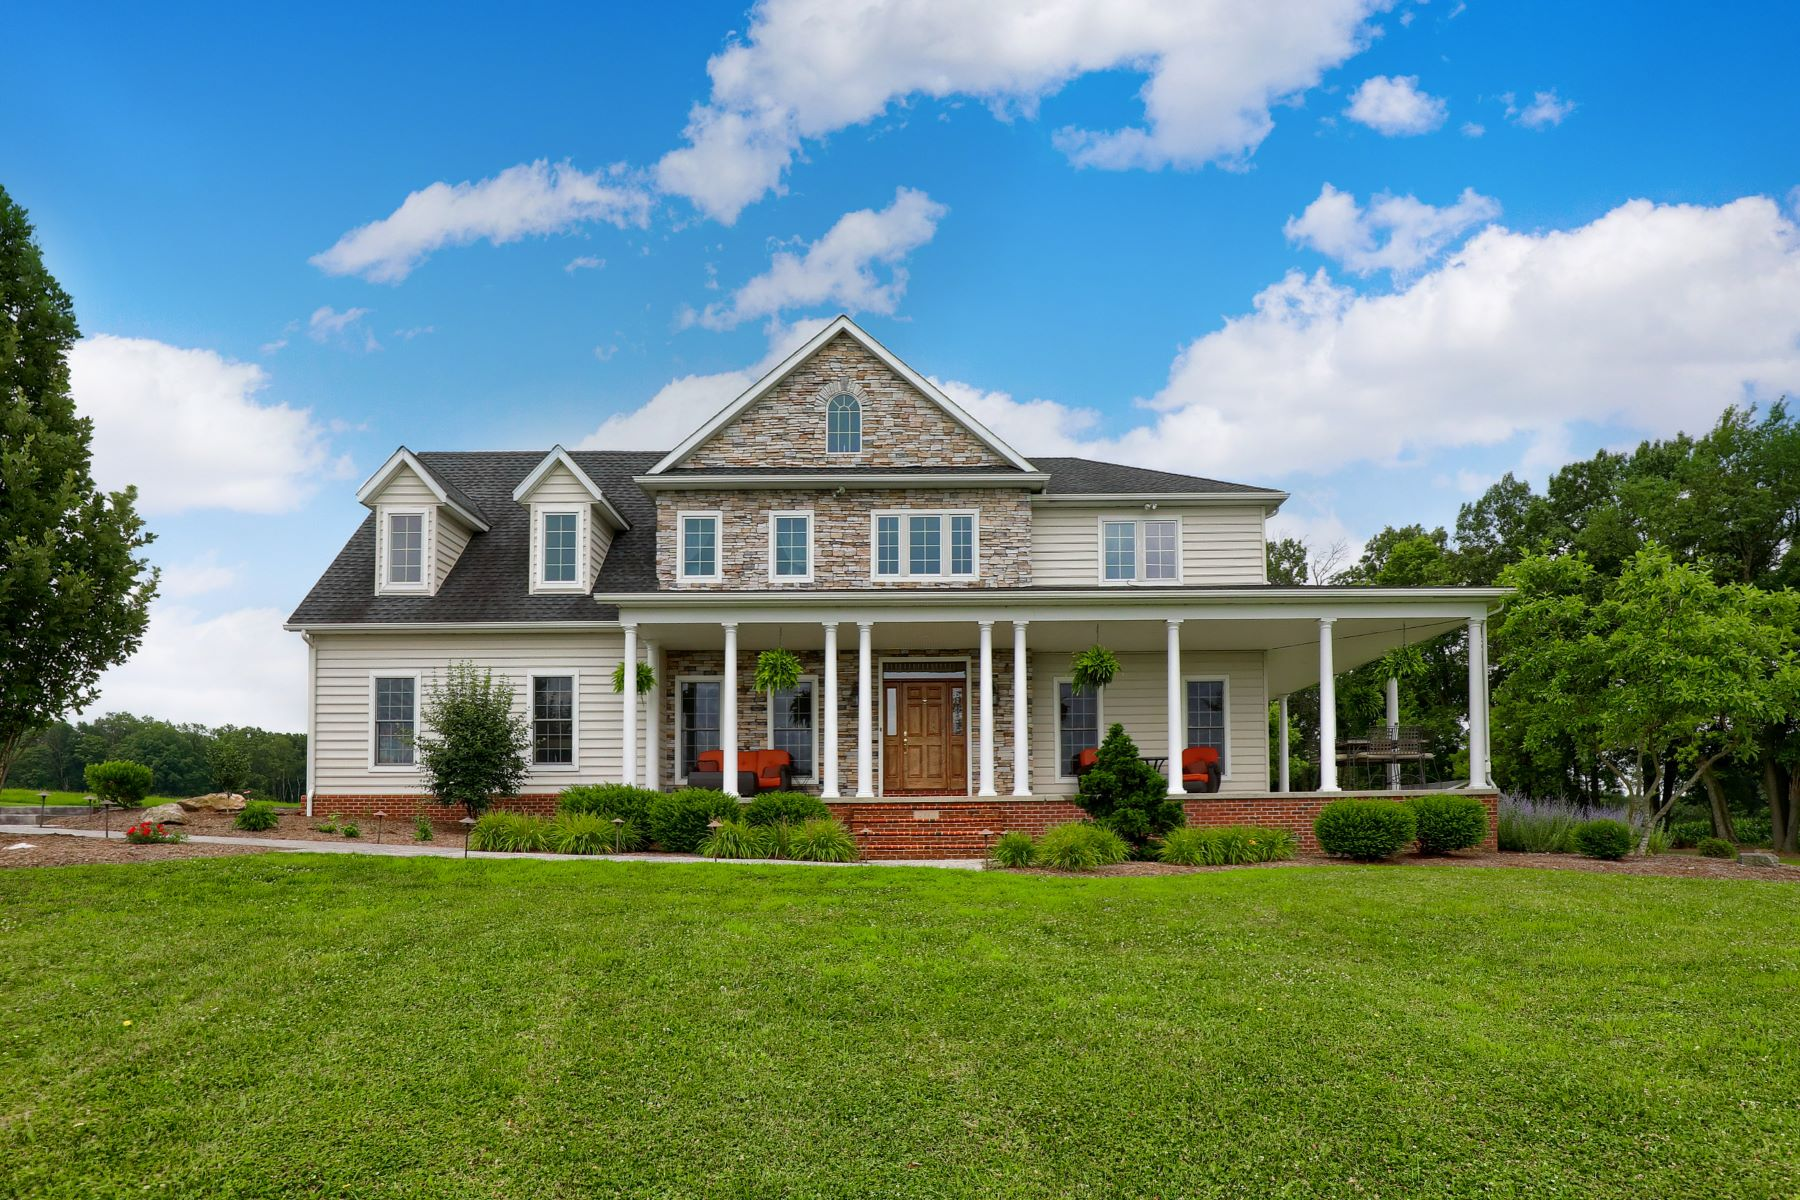 Single Family Homes for Sale at 5470 Mount Pisgah Road, 1, York, Pennsylvania 17406 United States